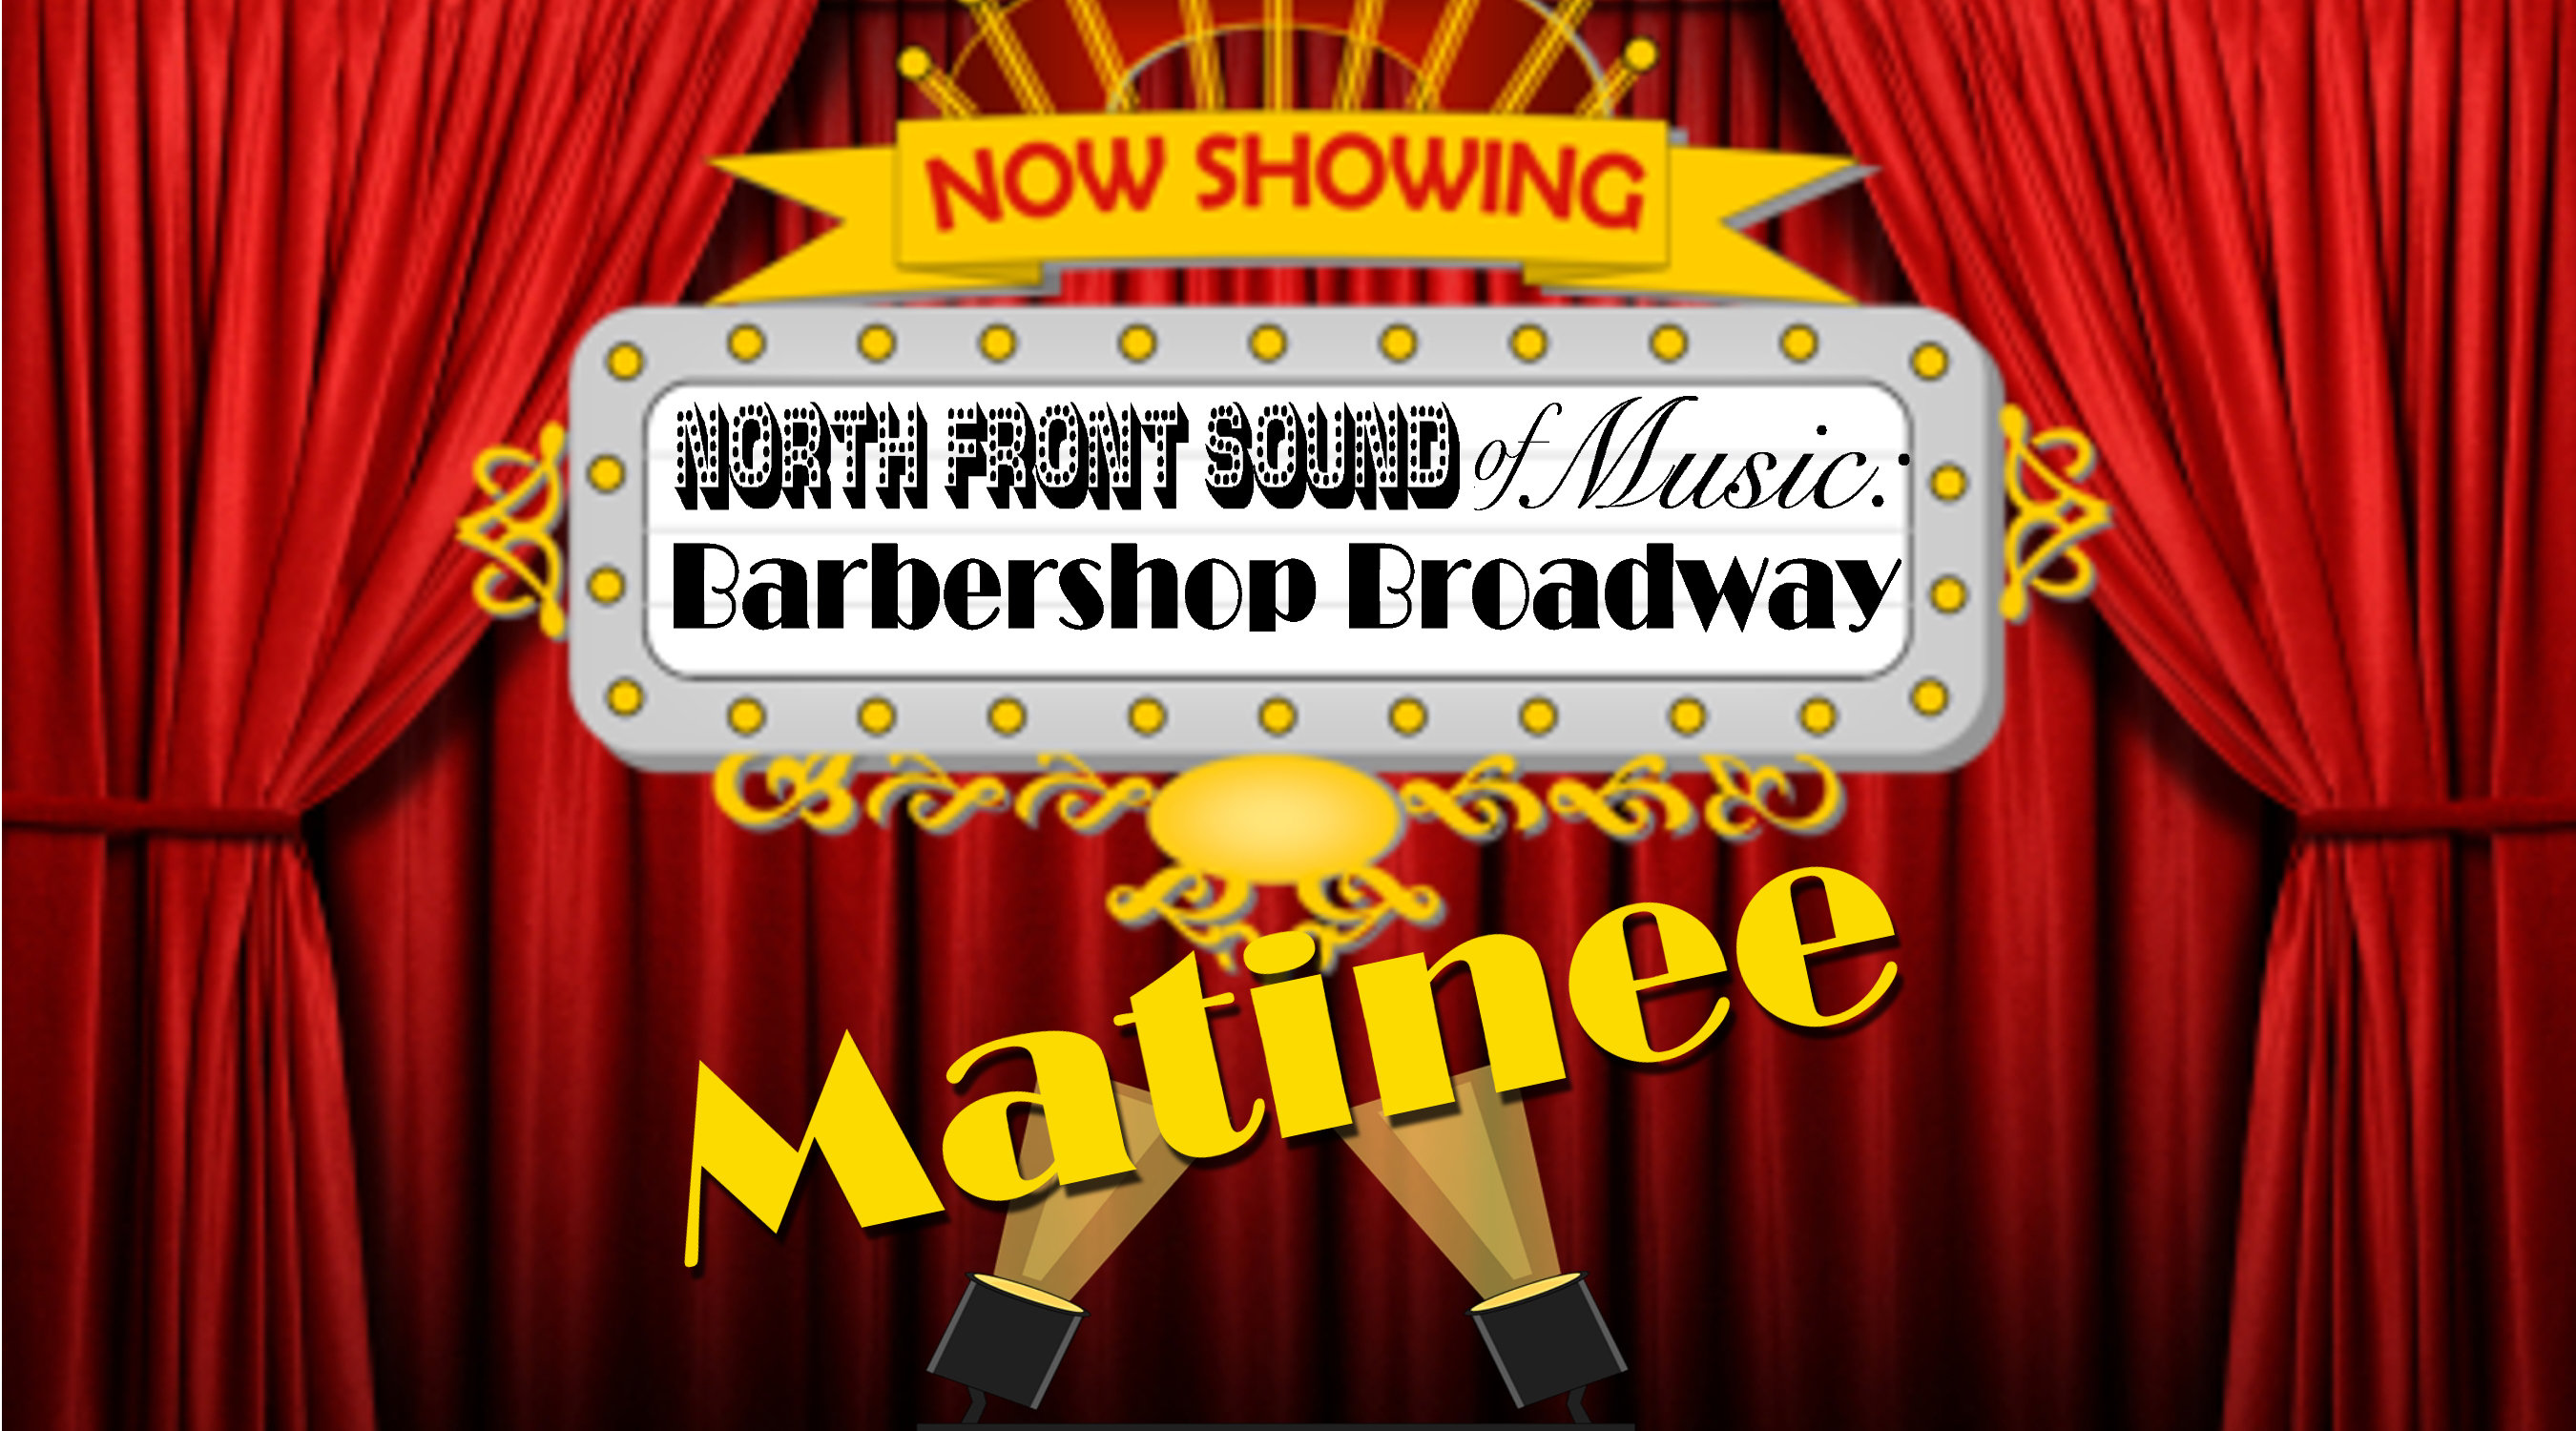 Matinee Family Ticket 18SMFM